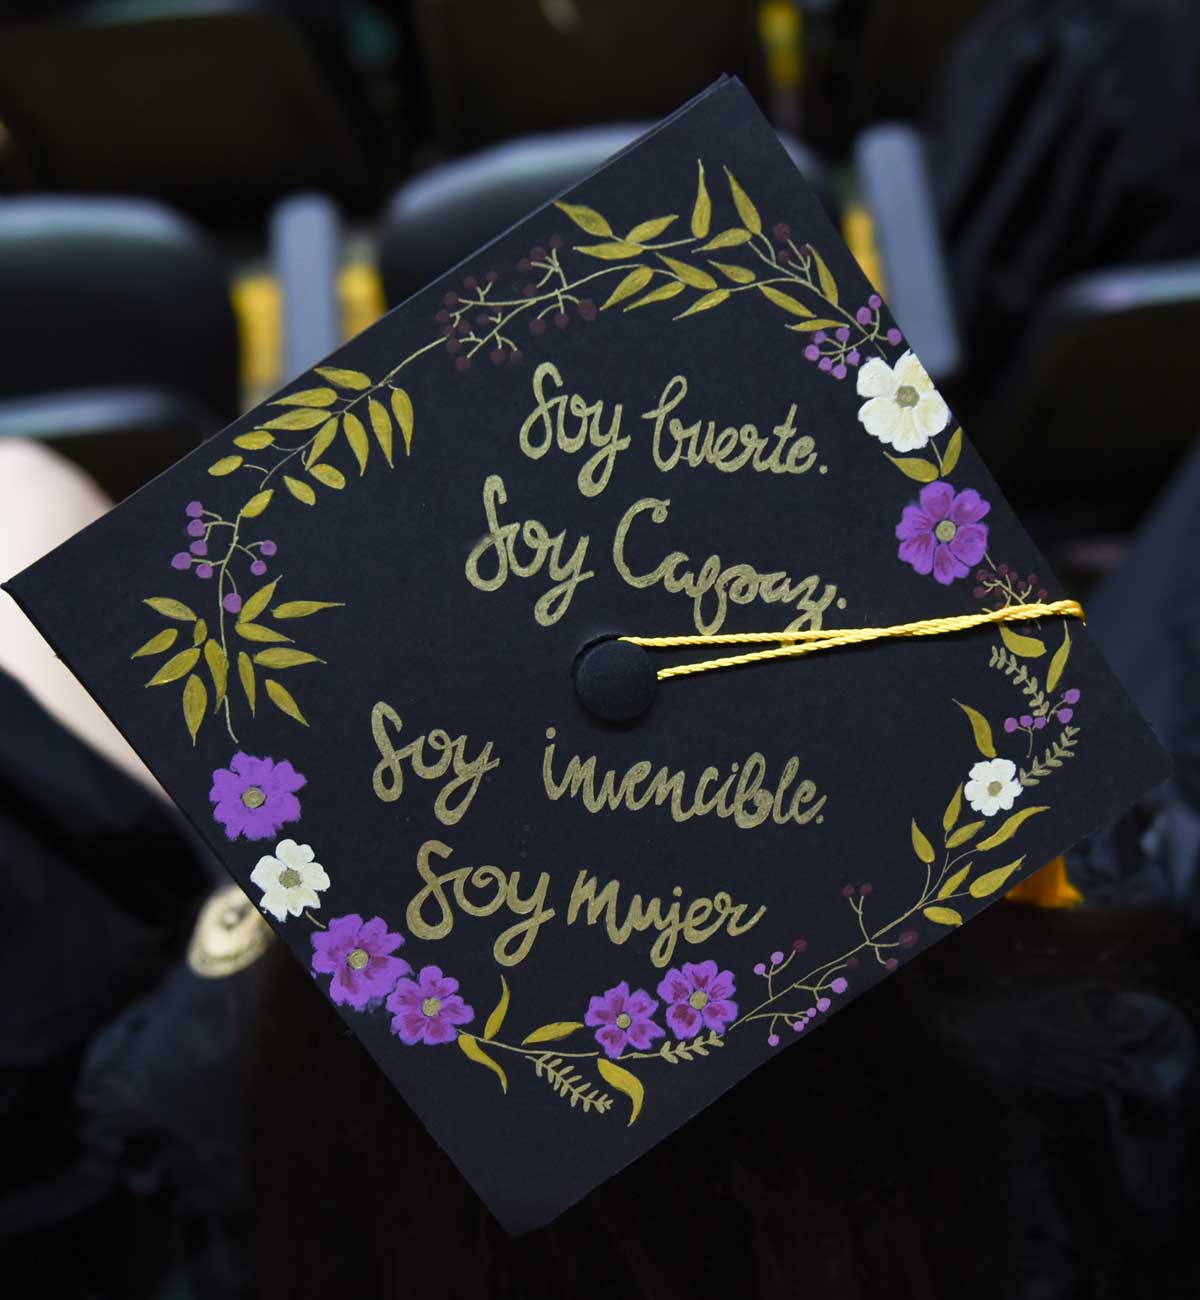 Grad cap decorated with Spanish text